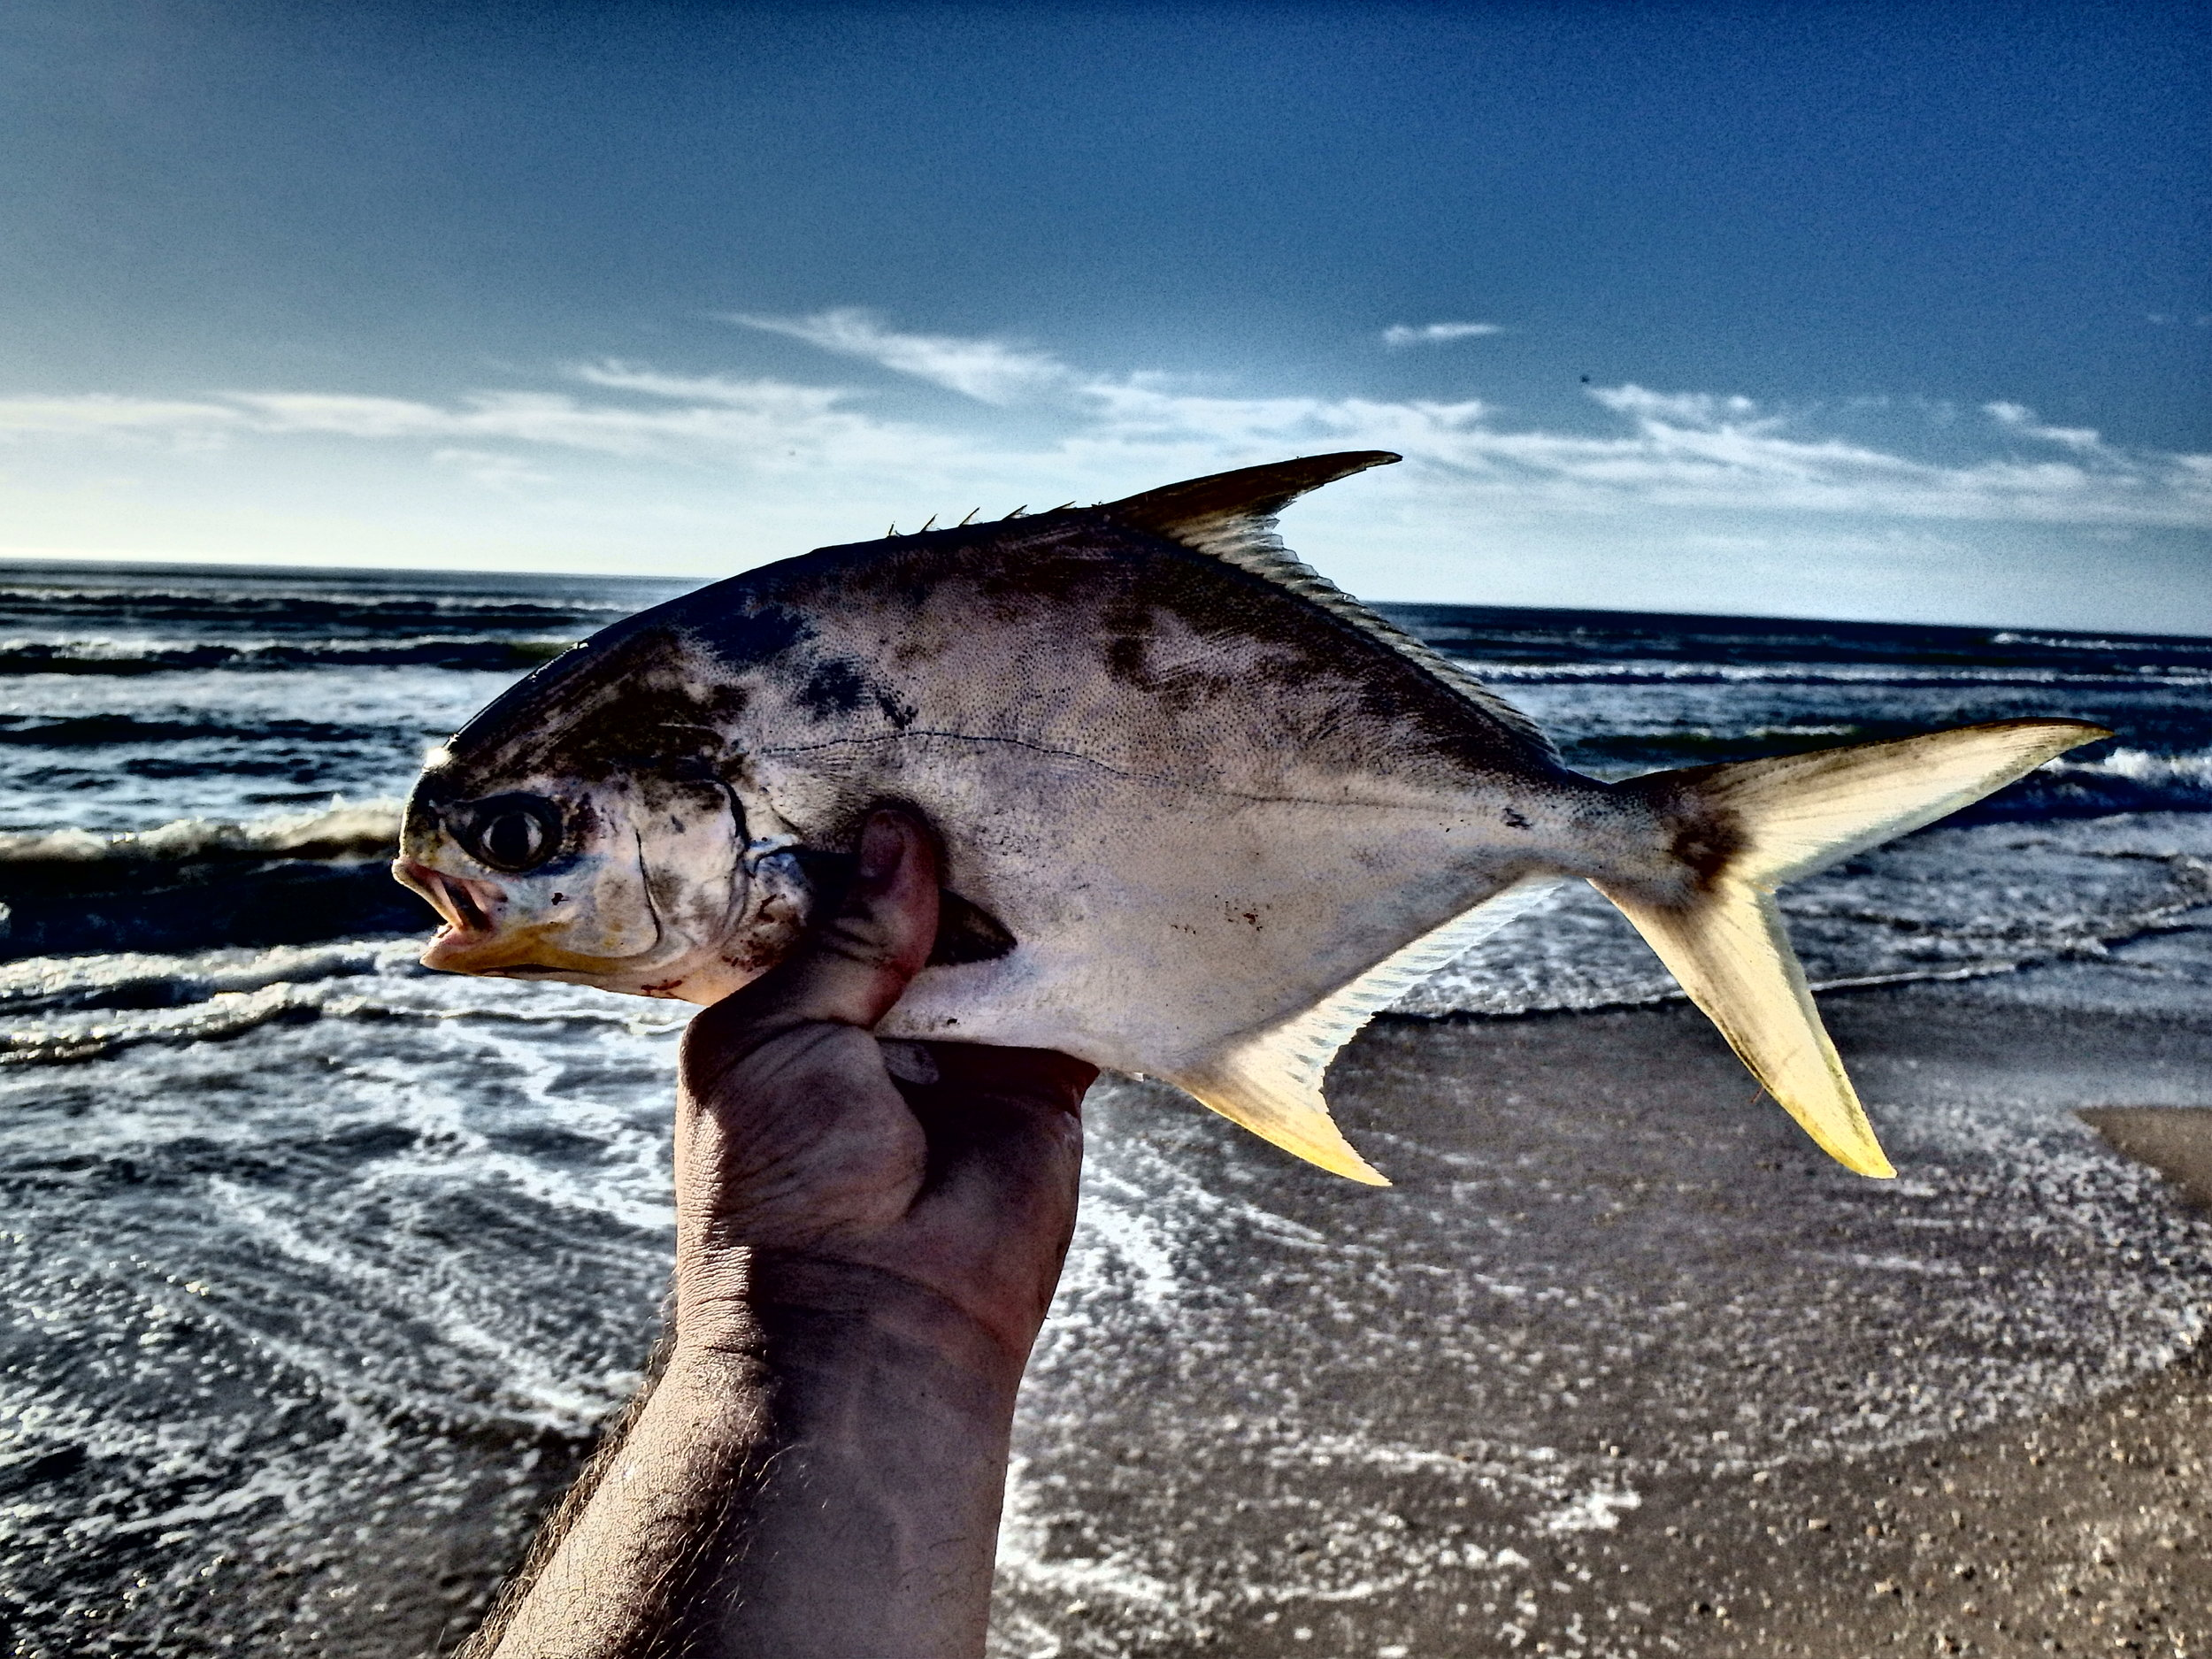 And that was a wrap, ended up visiting with a new friend on a lure expedition down the beach a little ways.